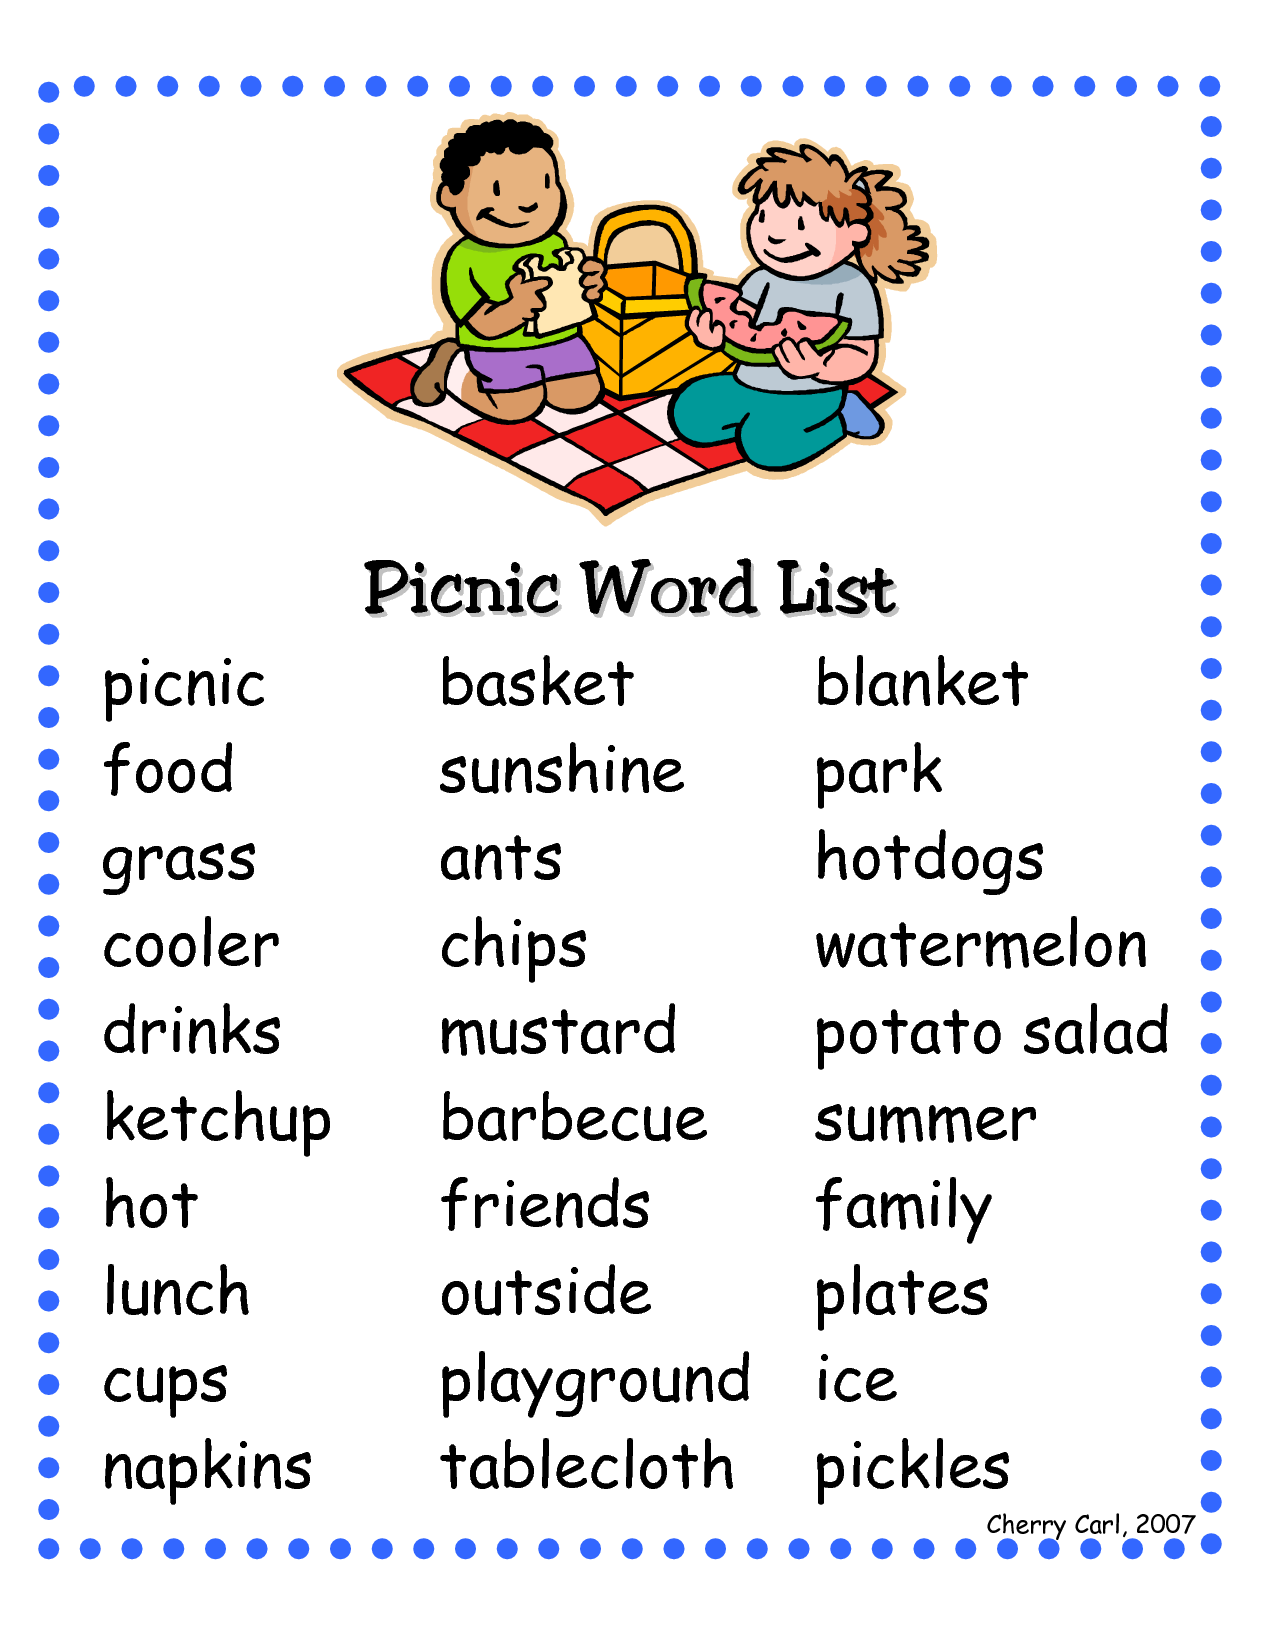 plan a fun family picnic this summer with these great tips ...